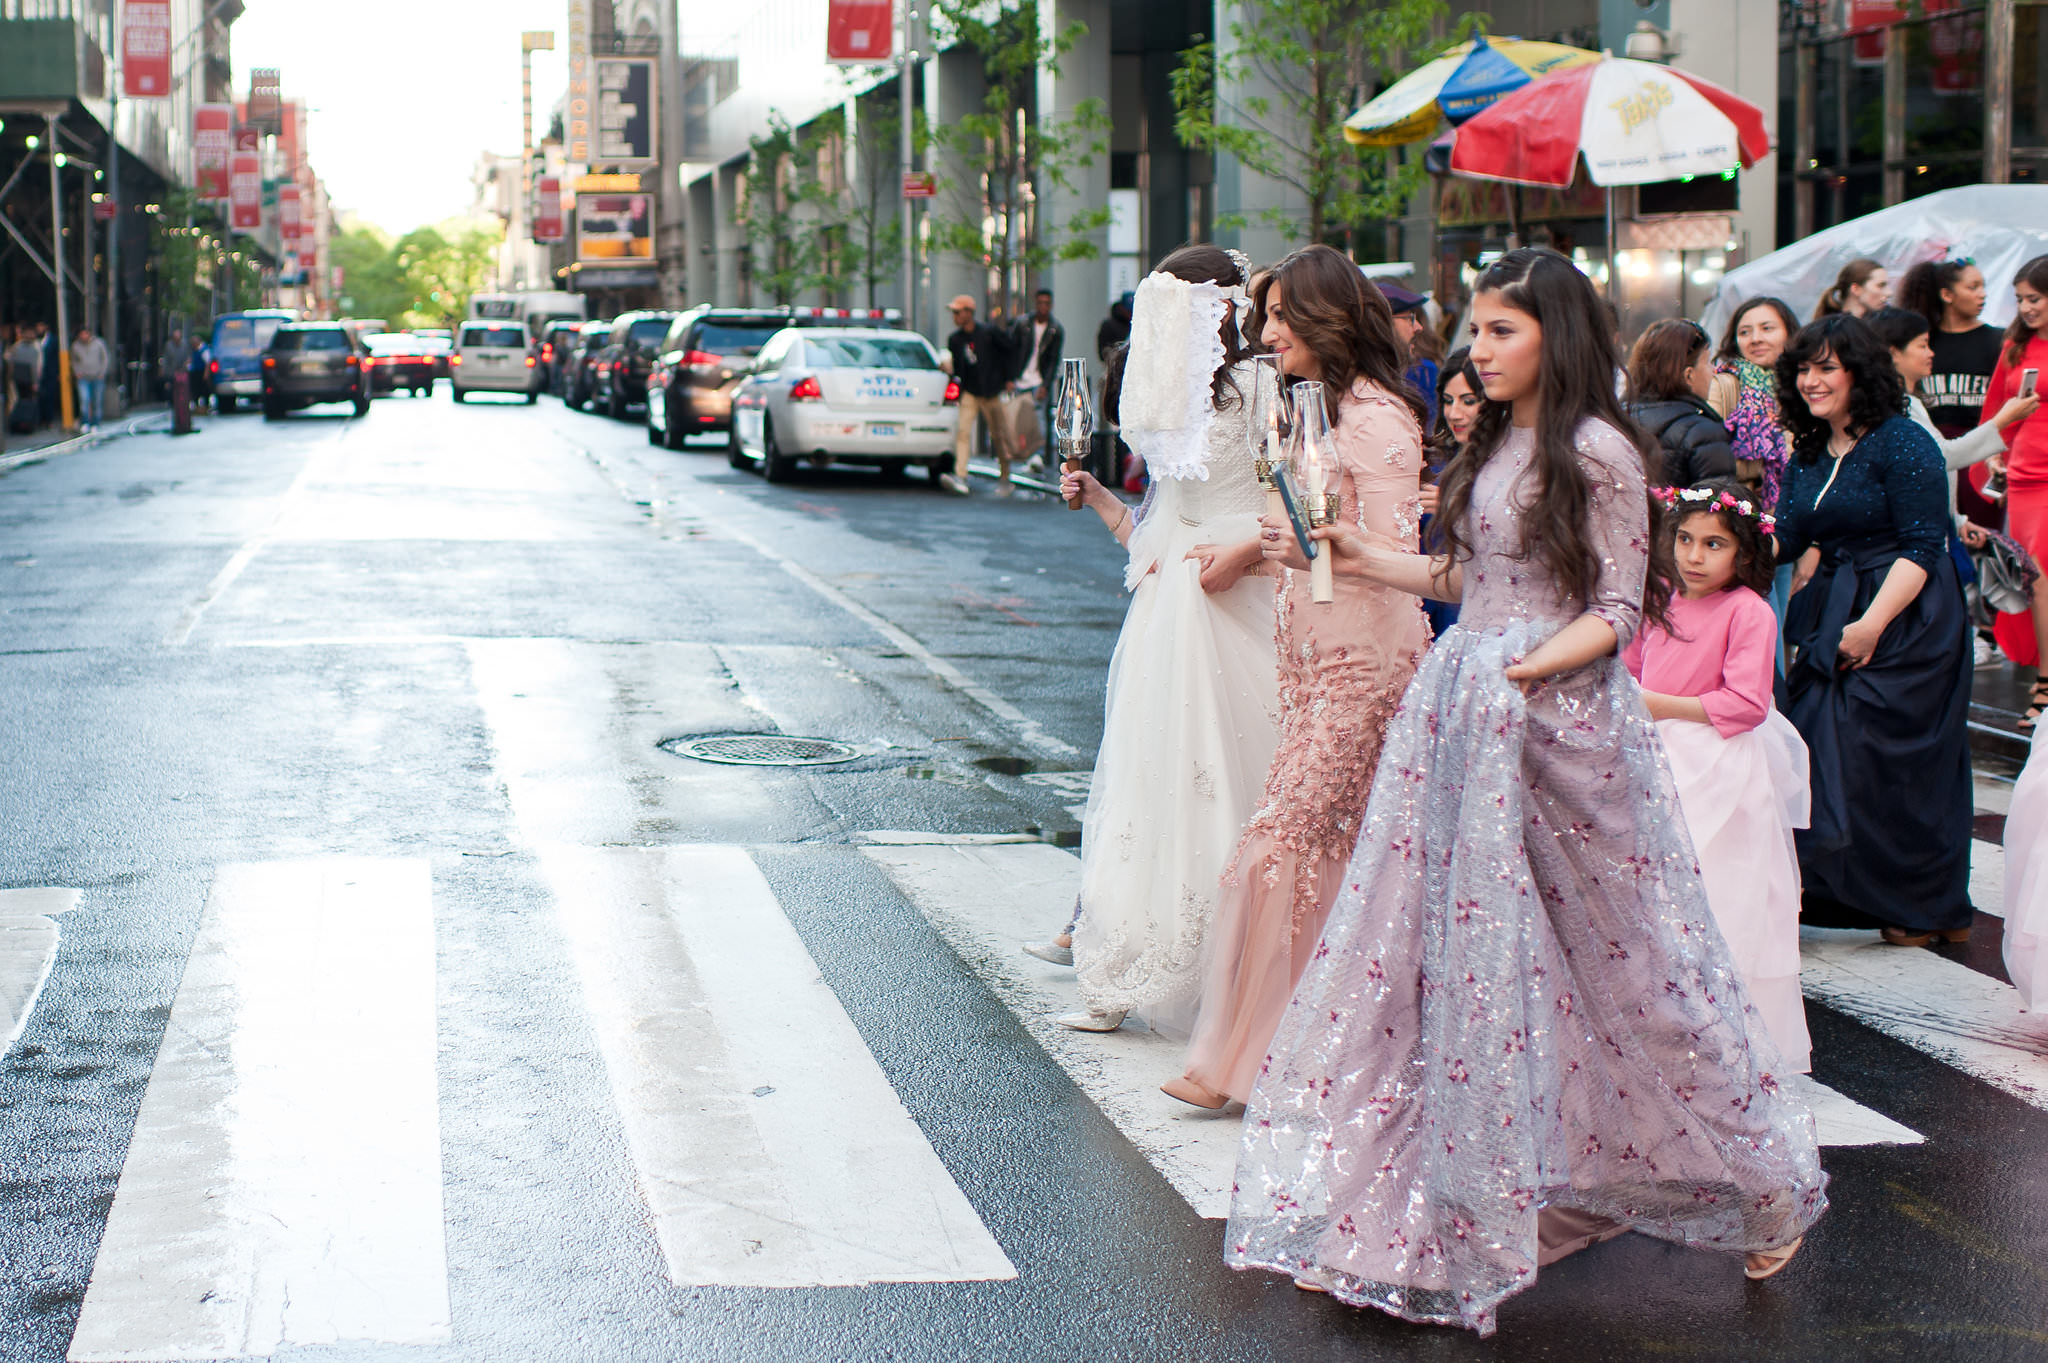 Historic Chabad Orthodox Jewish Wedding in Times Square Manhattan New York NYC Photo by Chaim Schvarcz, bride, walking down the isle, mother of the bride, mother of the groom